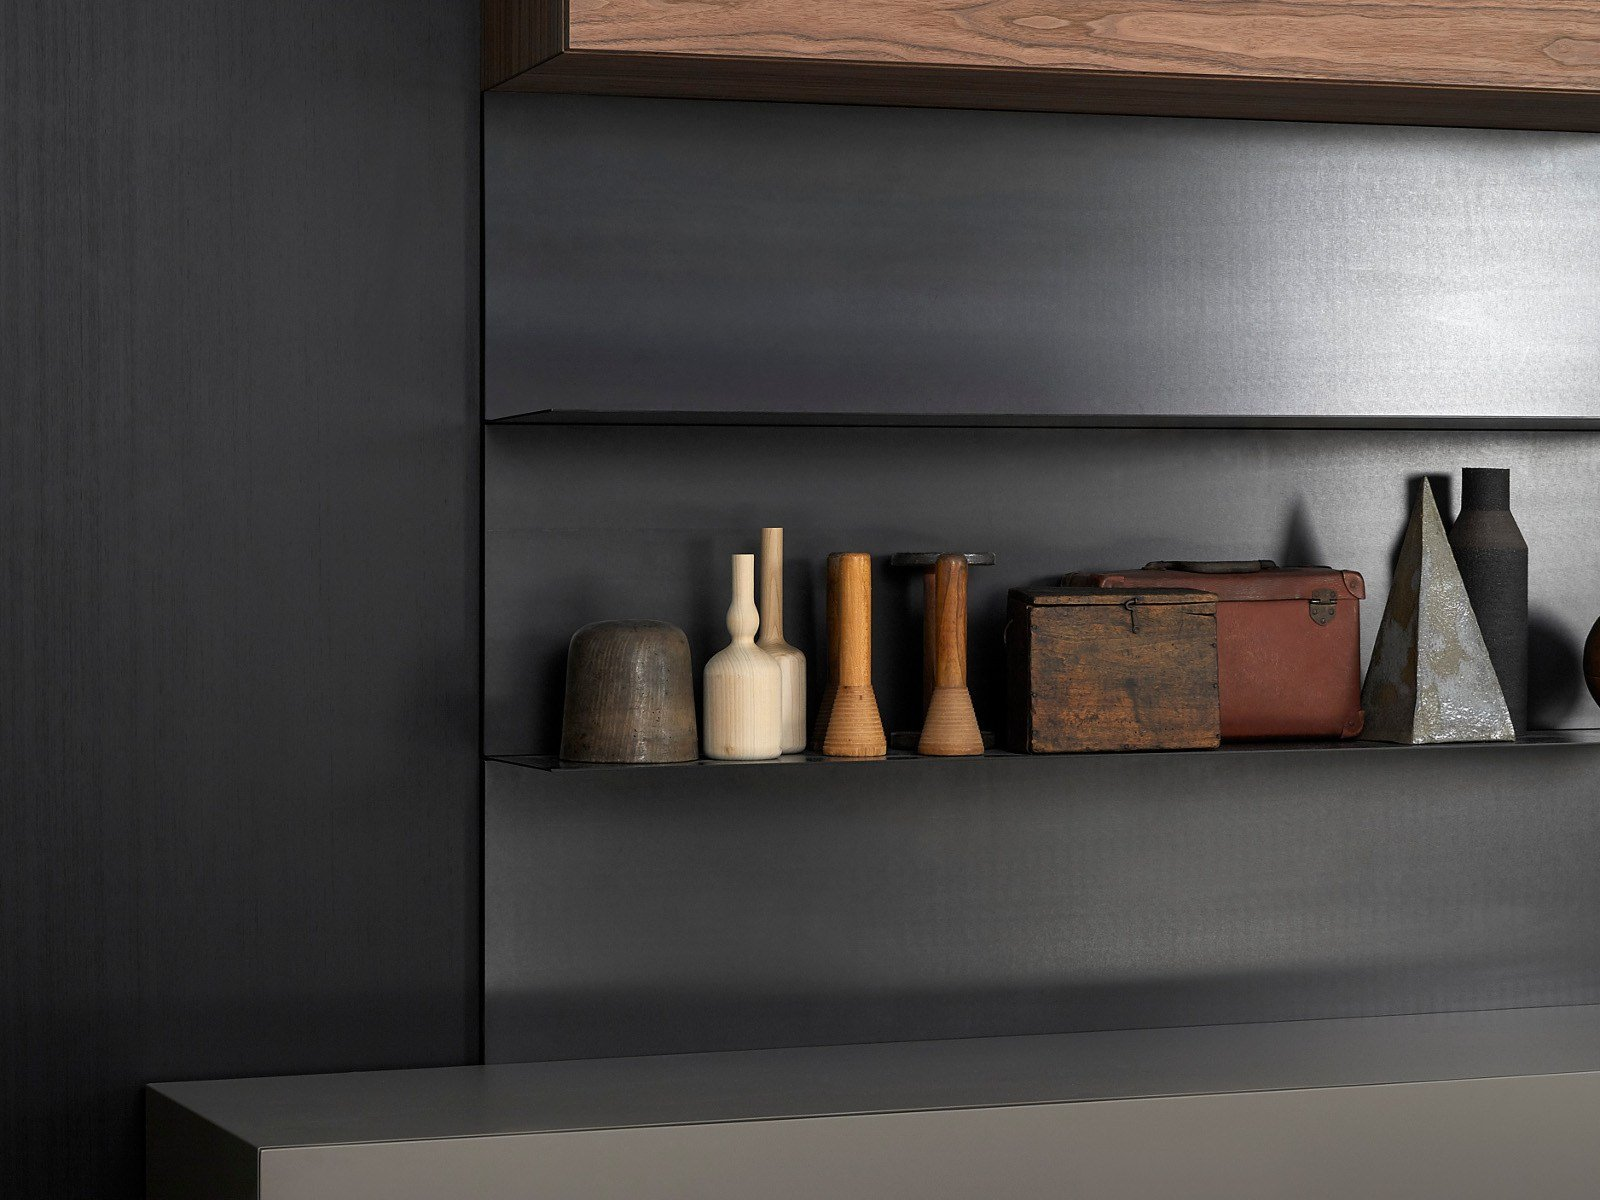 wall mounted storage wall load it by porro design piero lissoni. Black Bedroom Furniture Sets. Home Design Ideas